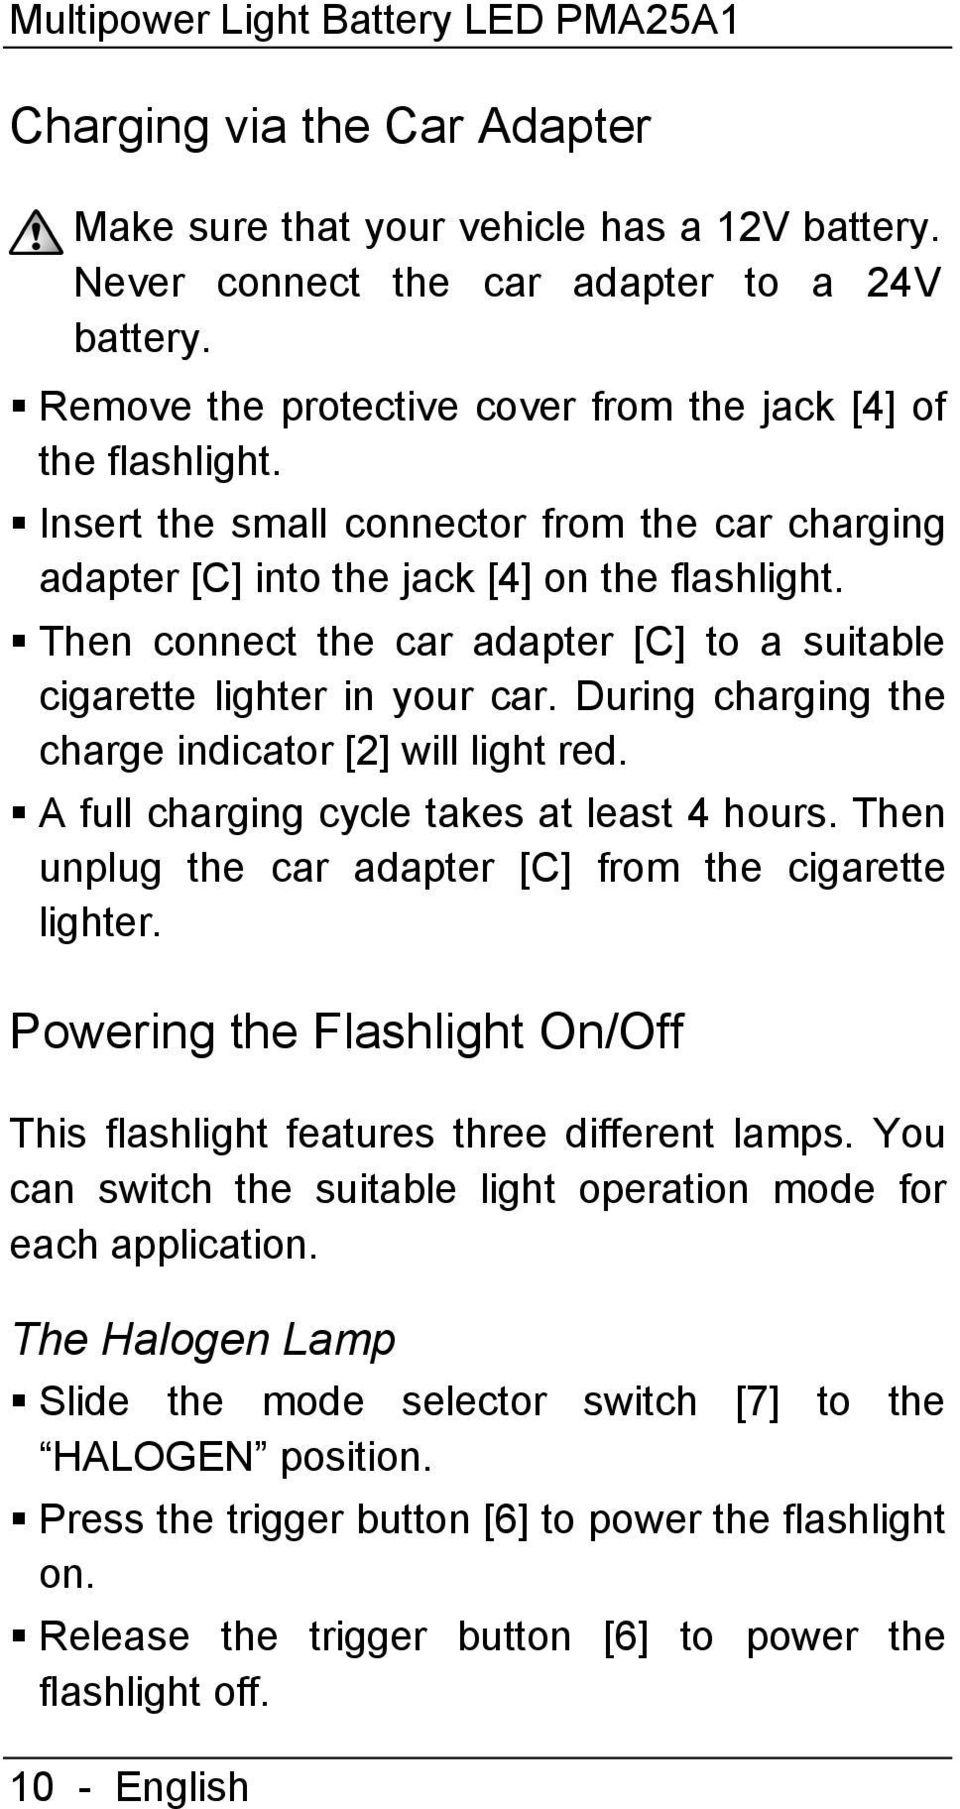 Then connect the car adapter [C] to a suitable cigarette lighter in your car. During charging the charge indicator [2] will light red. A full charging cycle takes at least 4 hours.